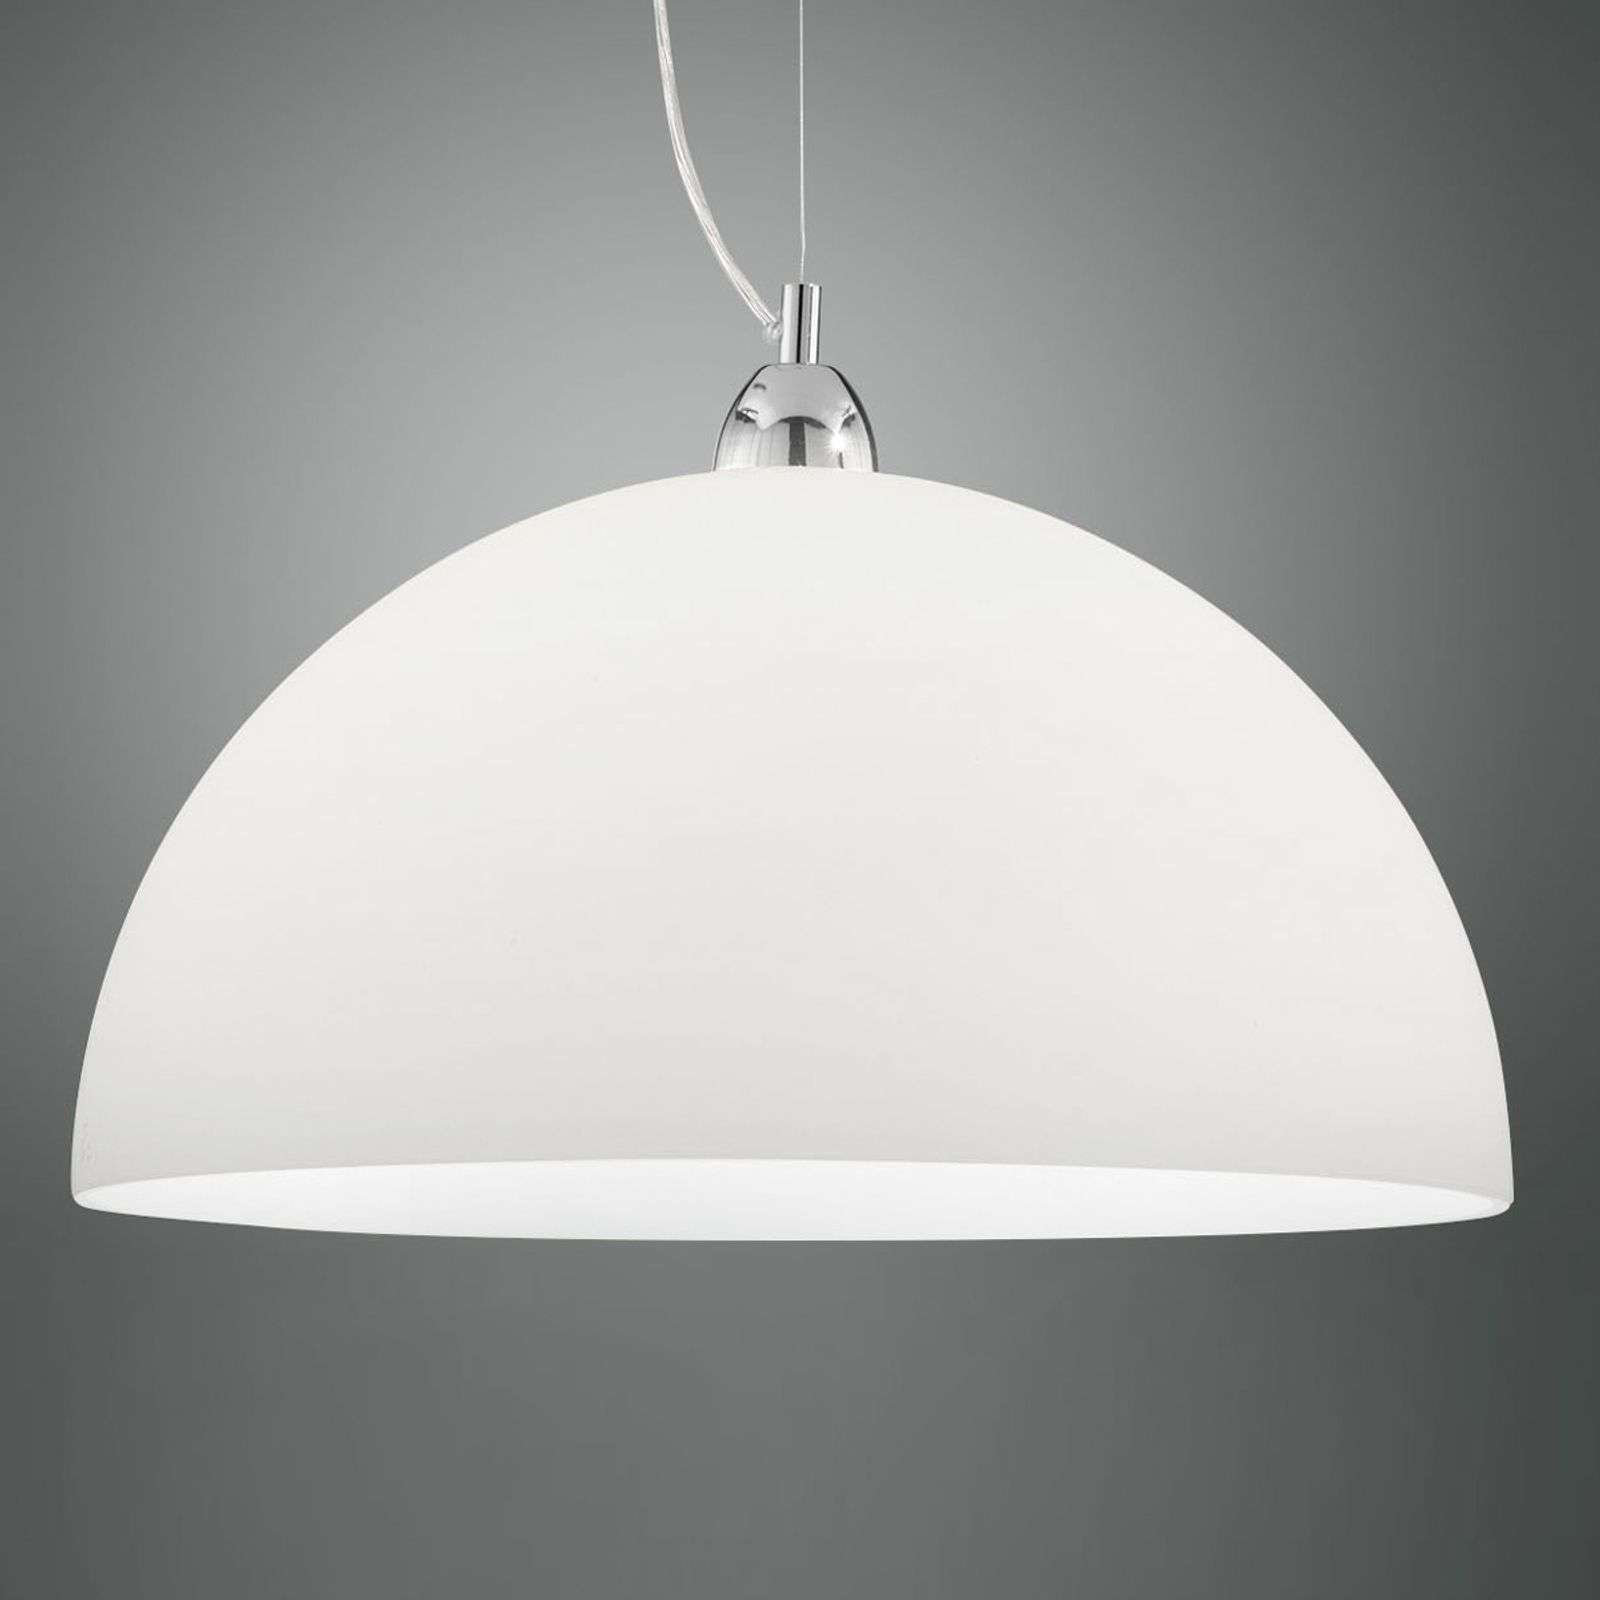 Suspension Nice en verre, blanc, 46 cm